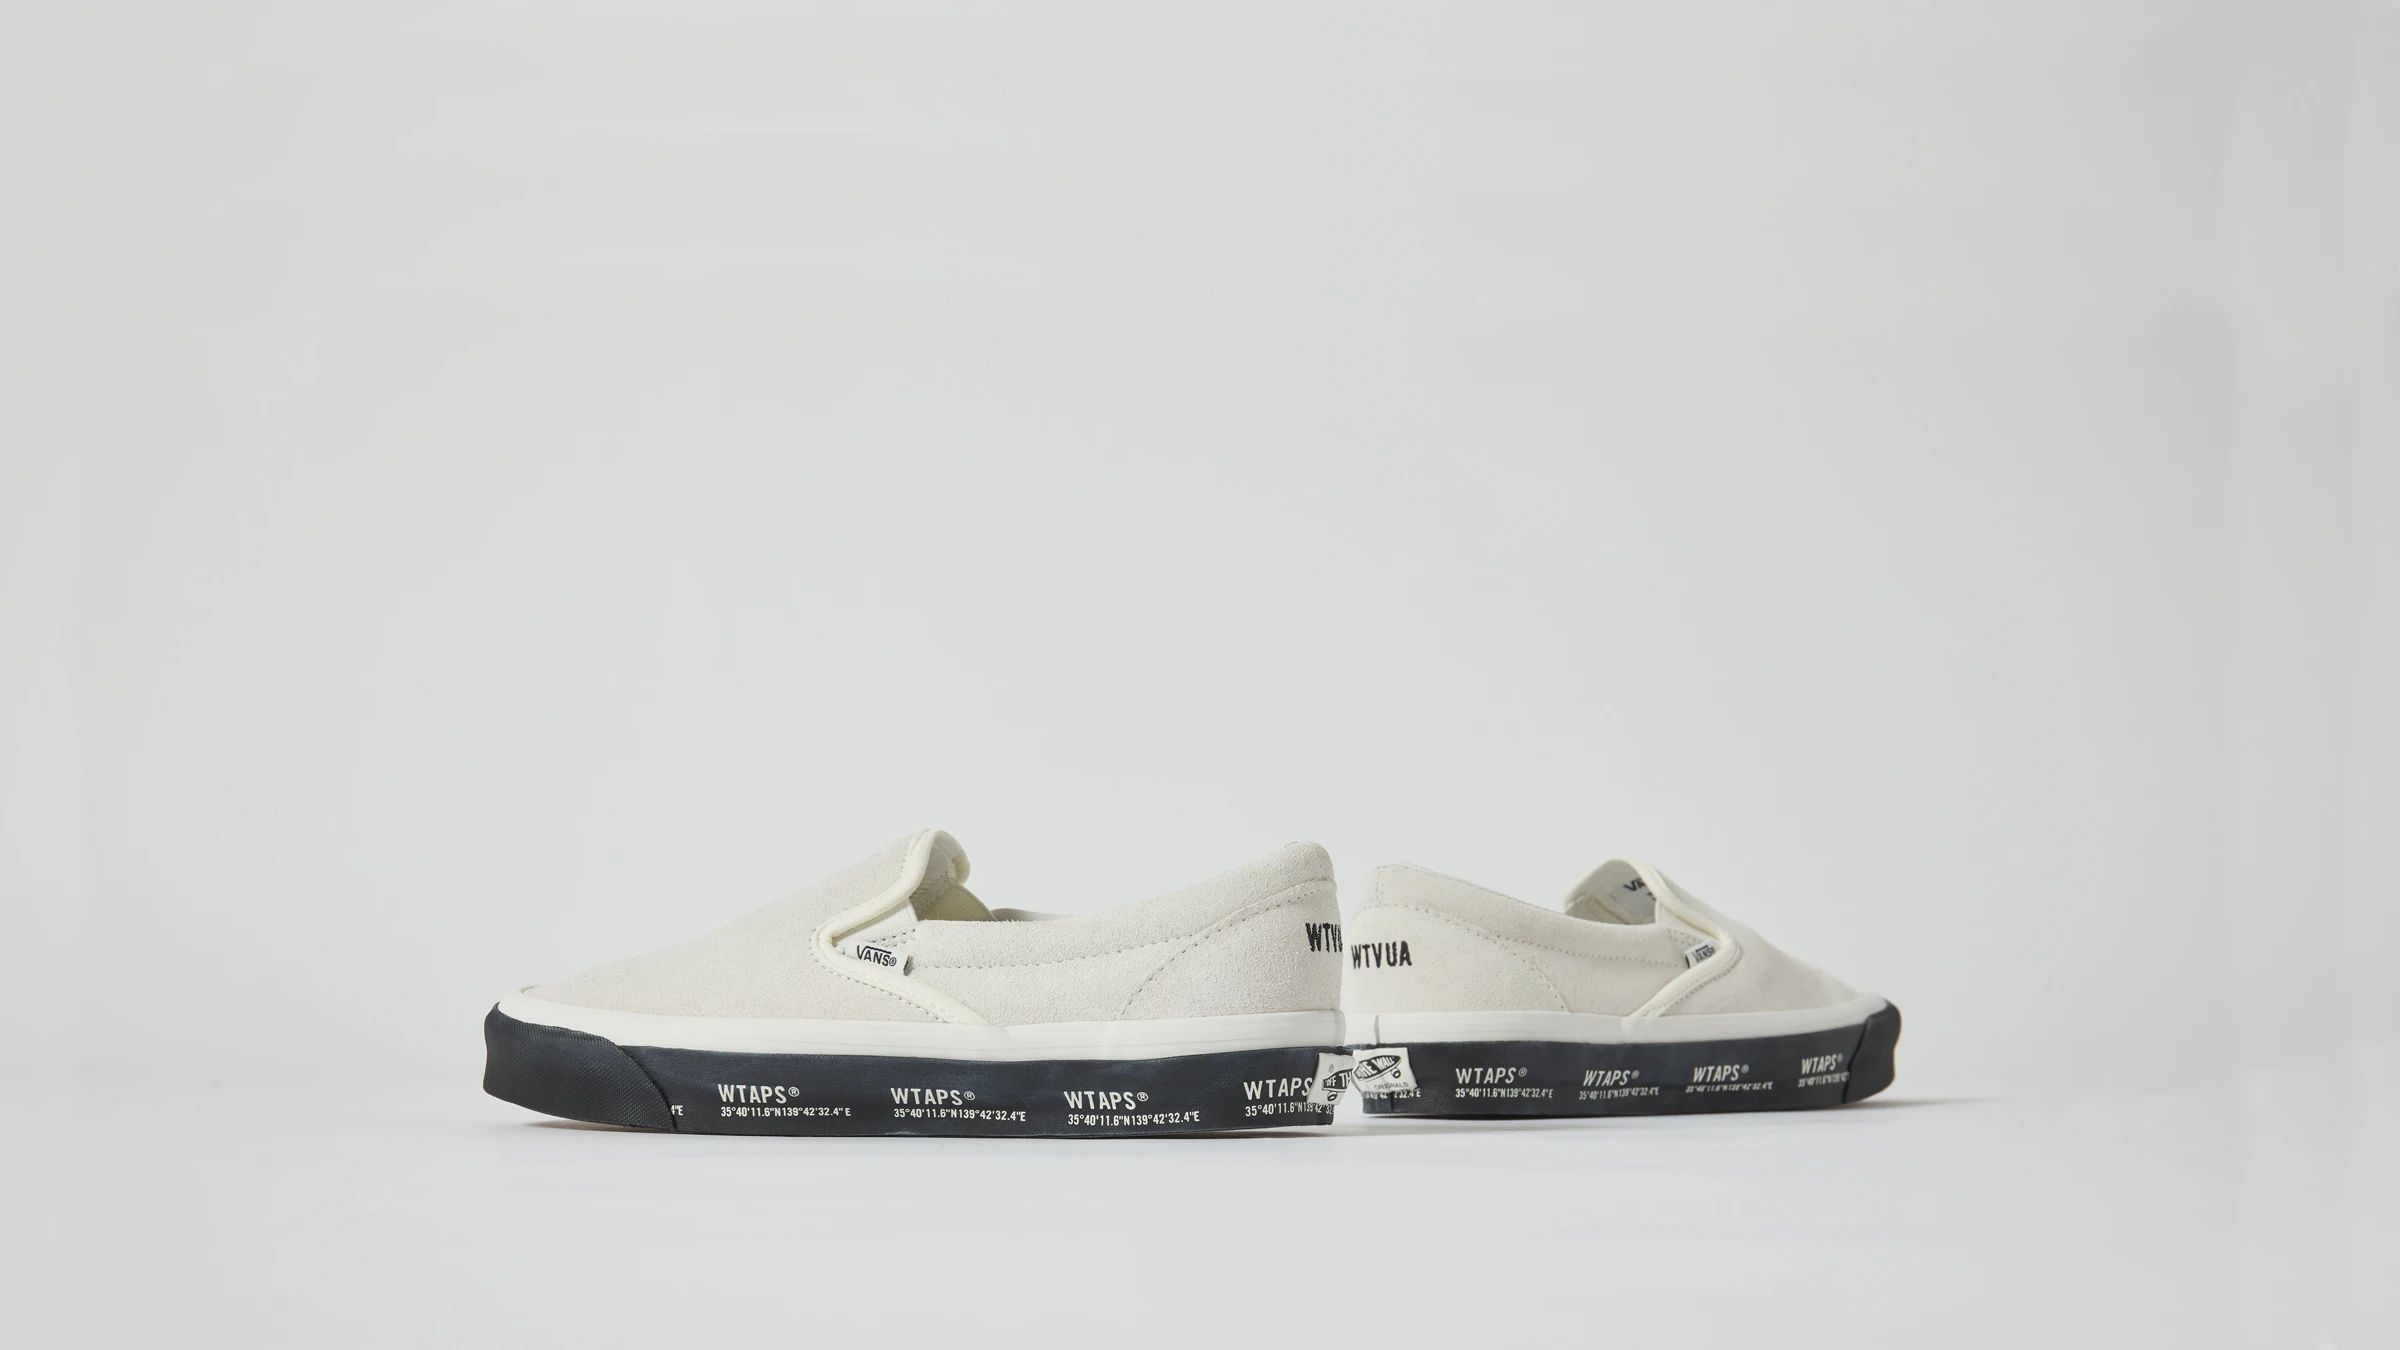 wtaps-vans-valut-20aw-collaboration-sneaker-release-20200822